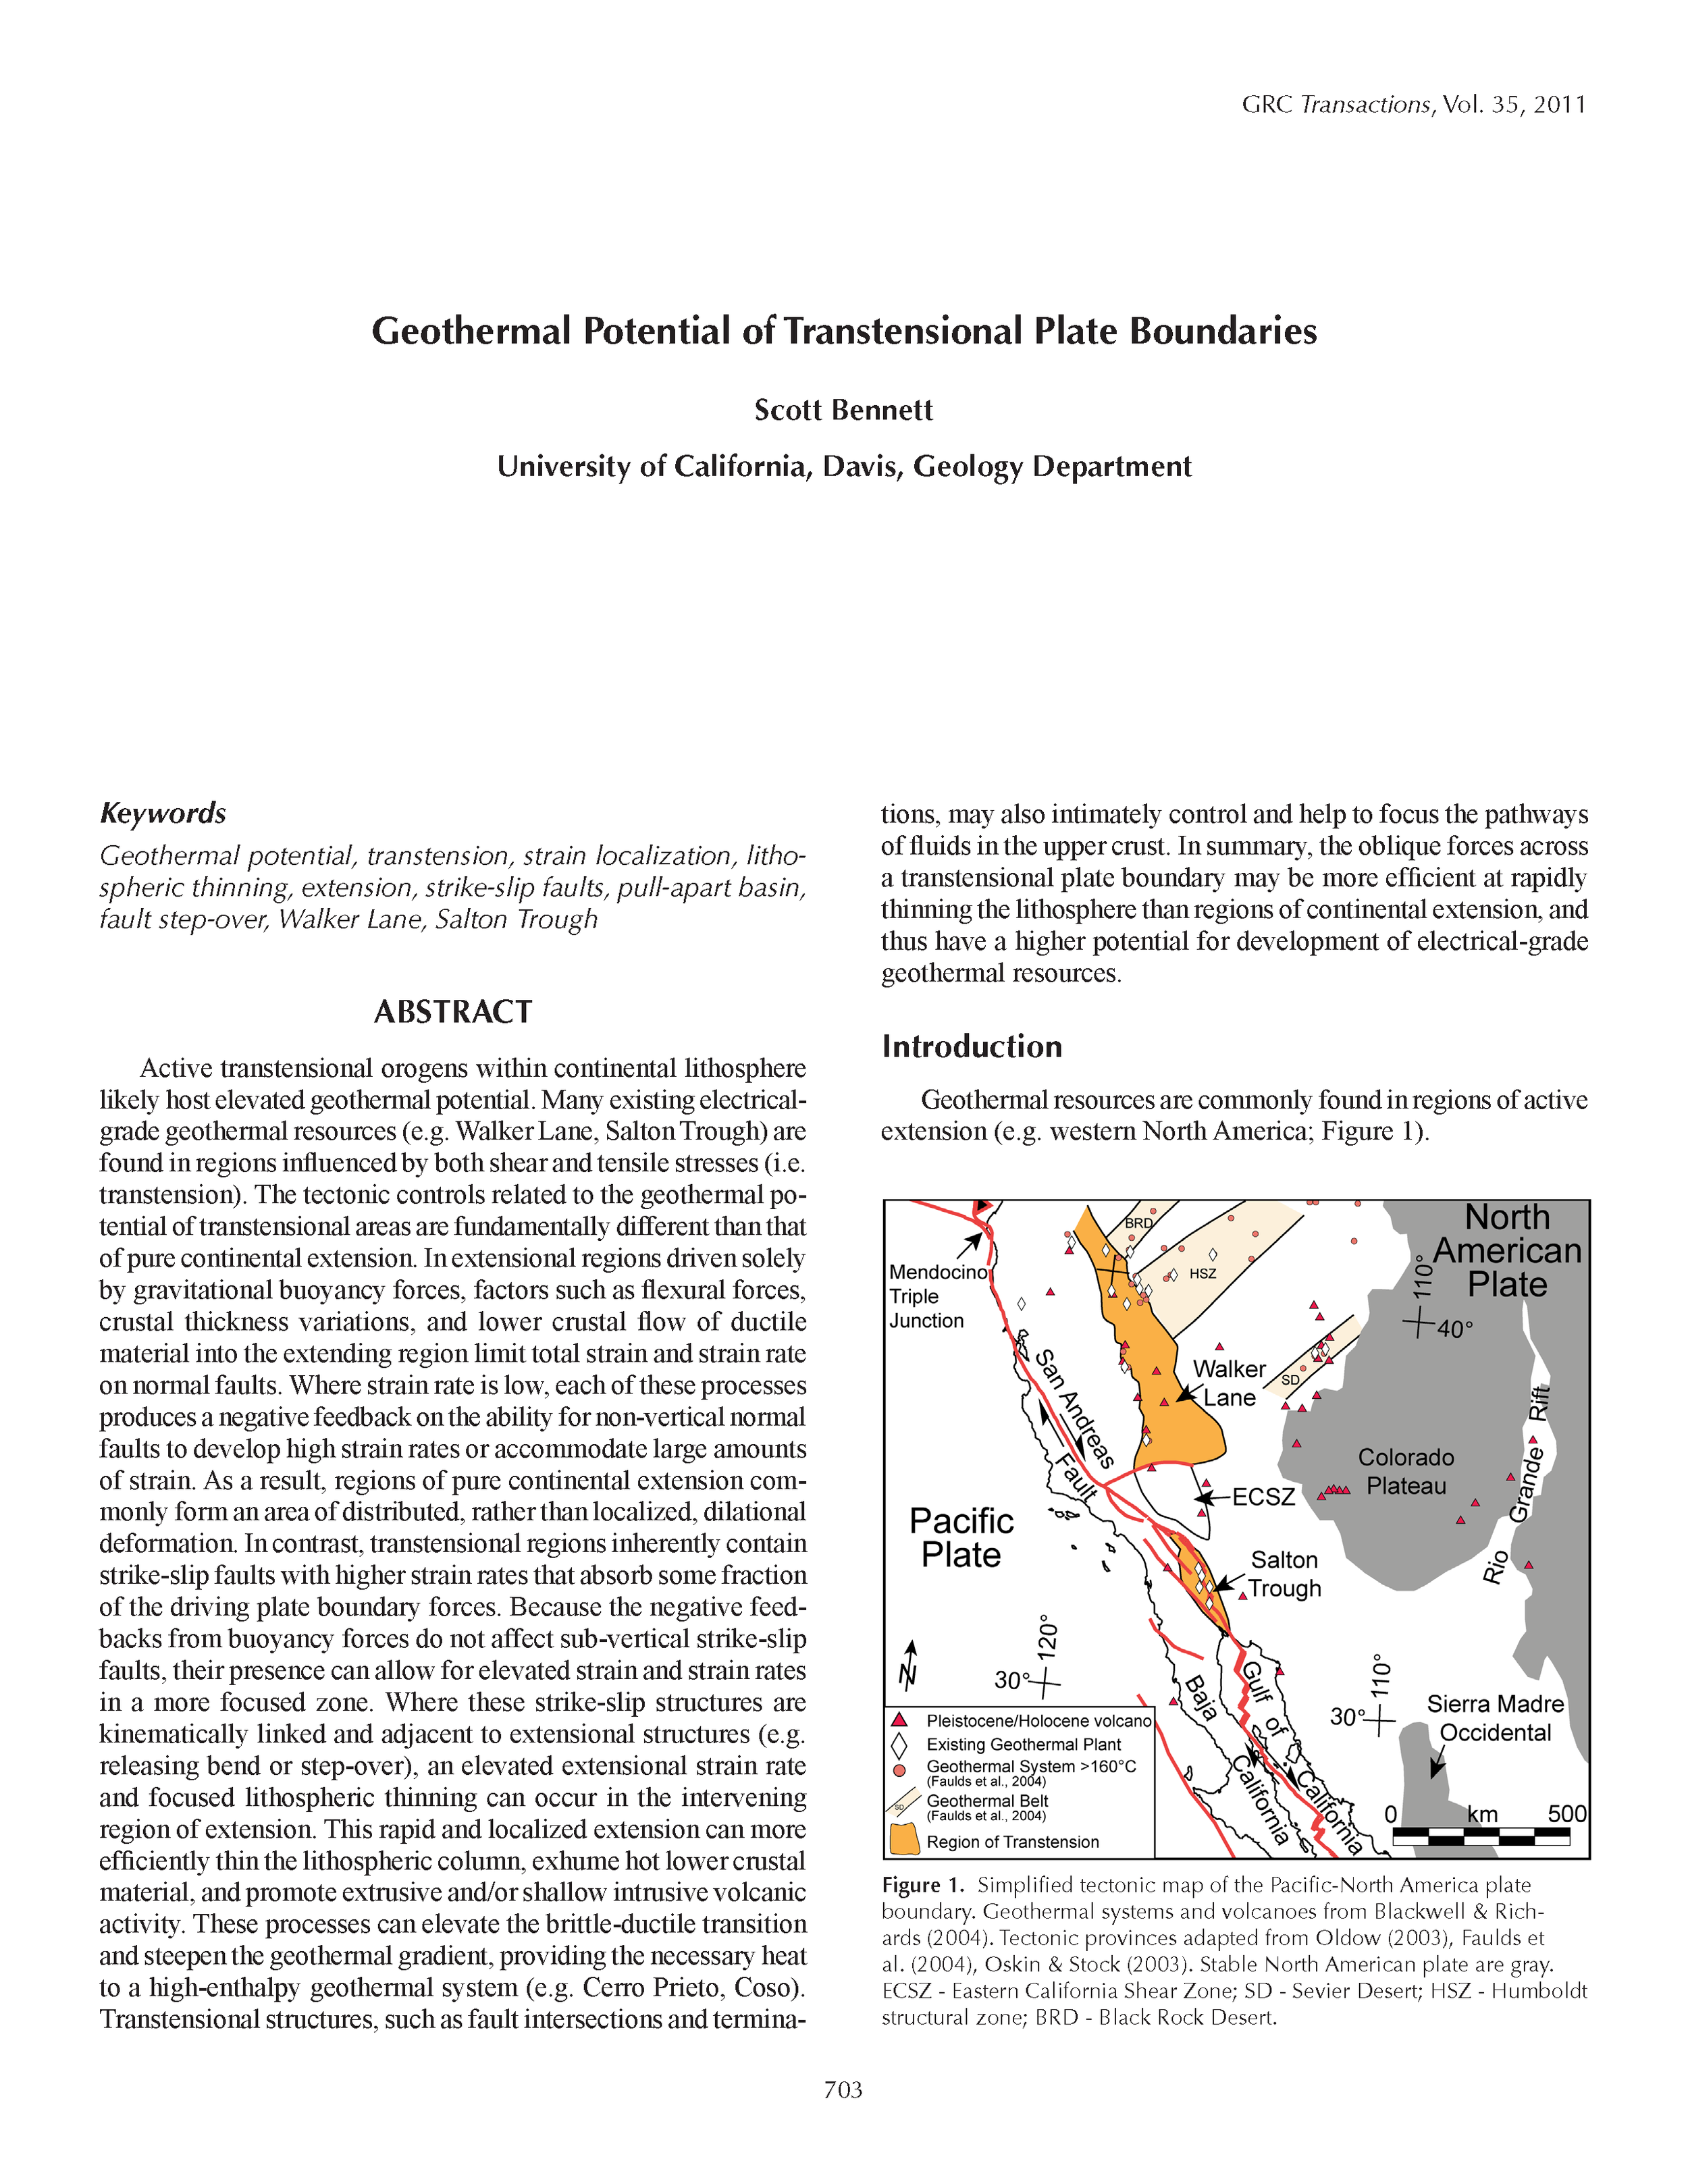 Bennett_Geothermal Potential of Transtensional Plate Boundaries_GRC Trans_2011.png